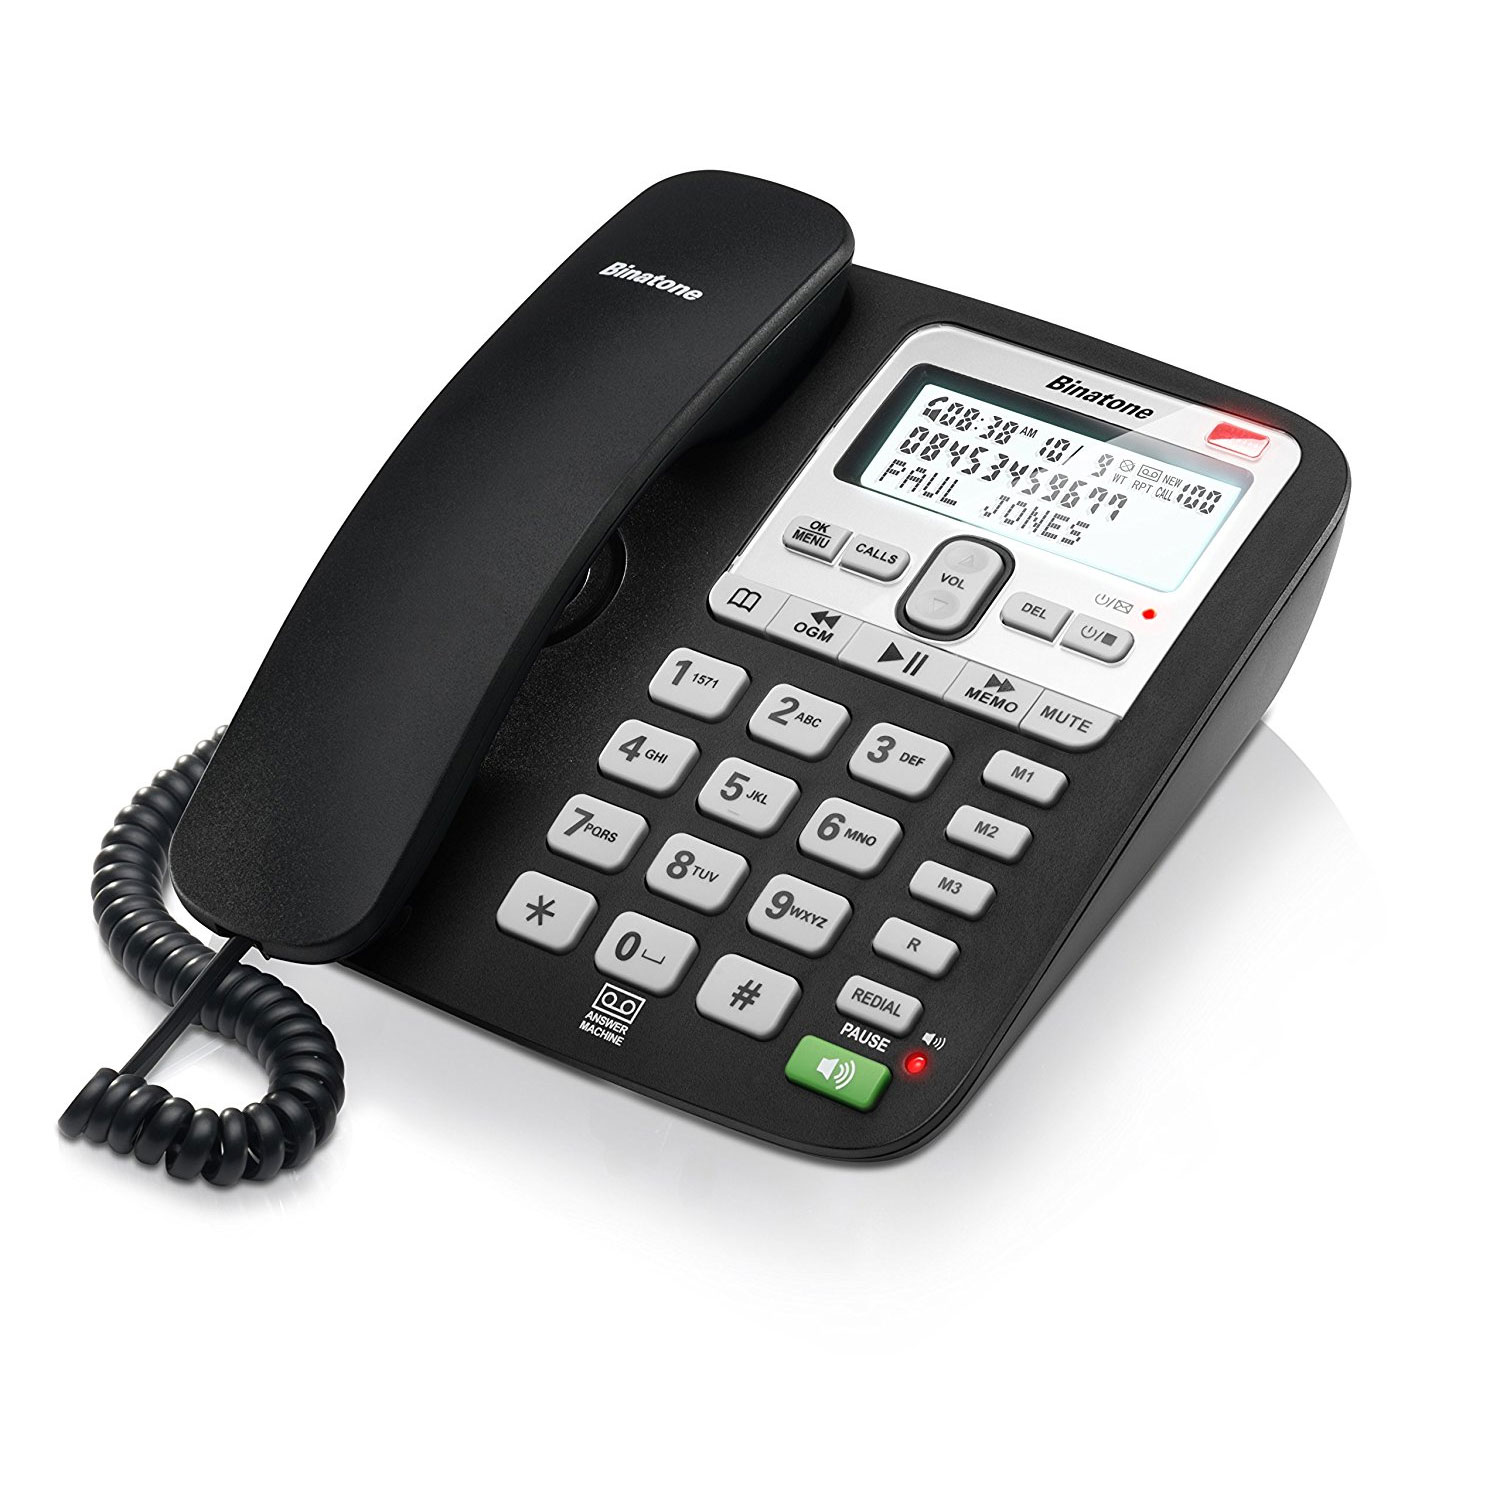 Binatone Acura 3000 Corded Desktop Phone With Call Blocker